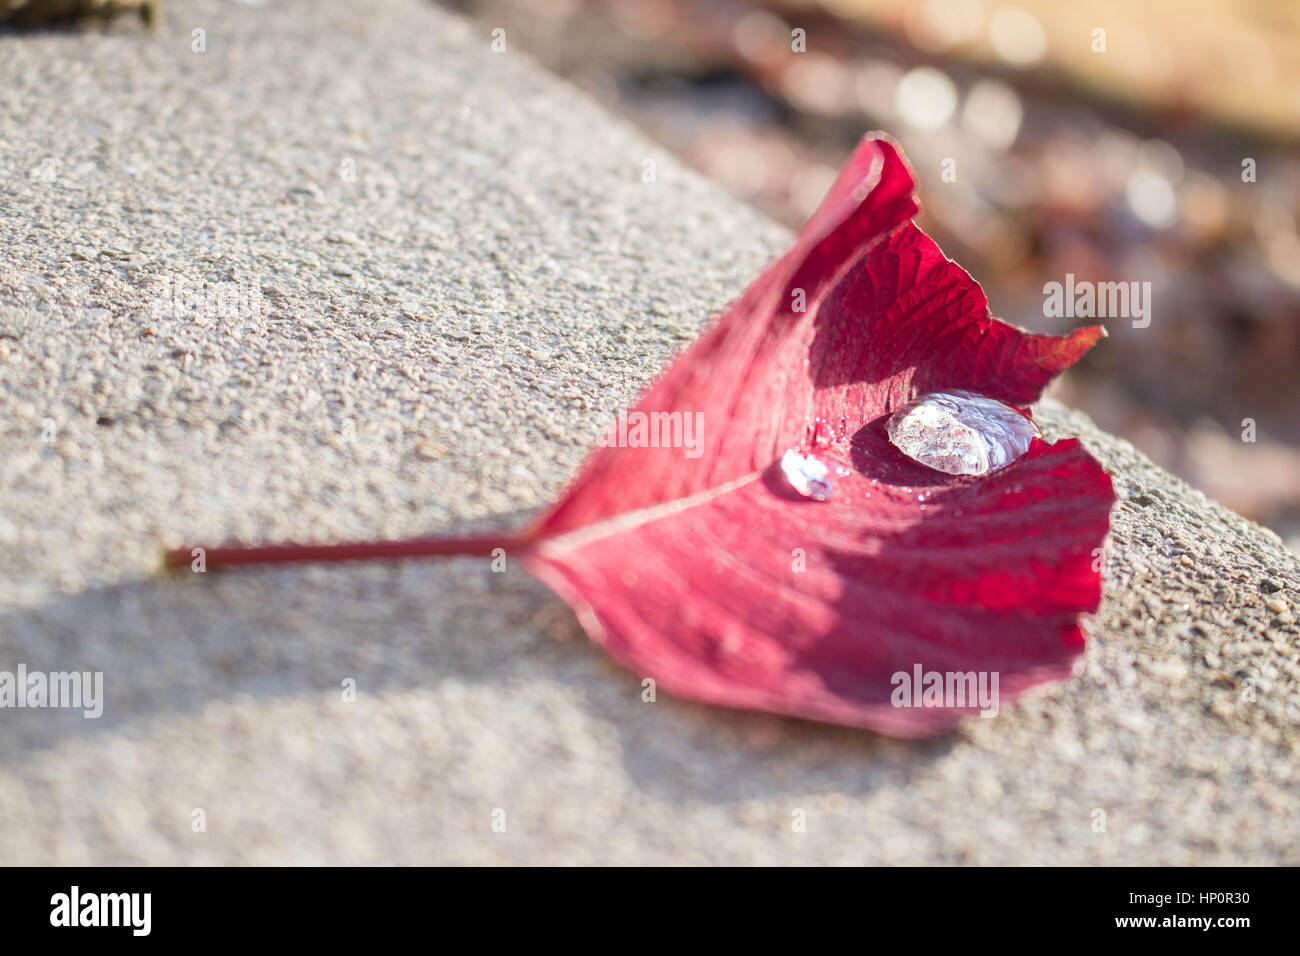 Poinsettia Petal with Reflections in Water Droplets Landscape - Stock Image